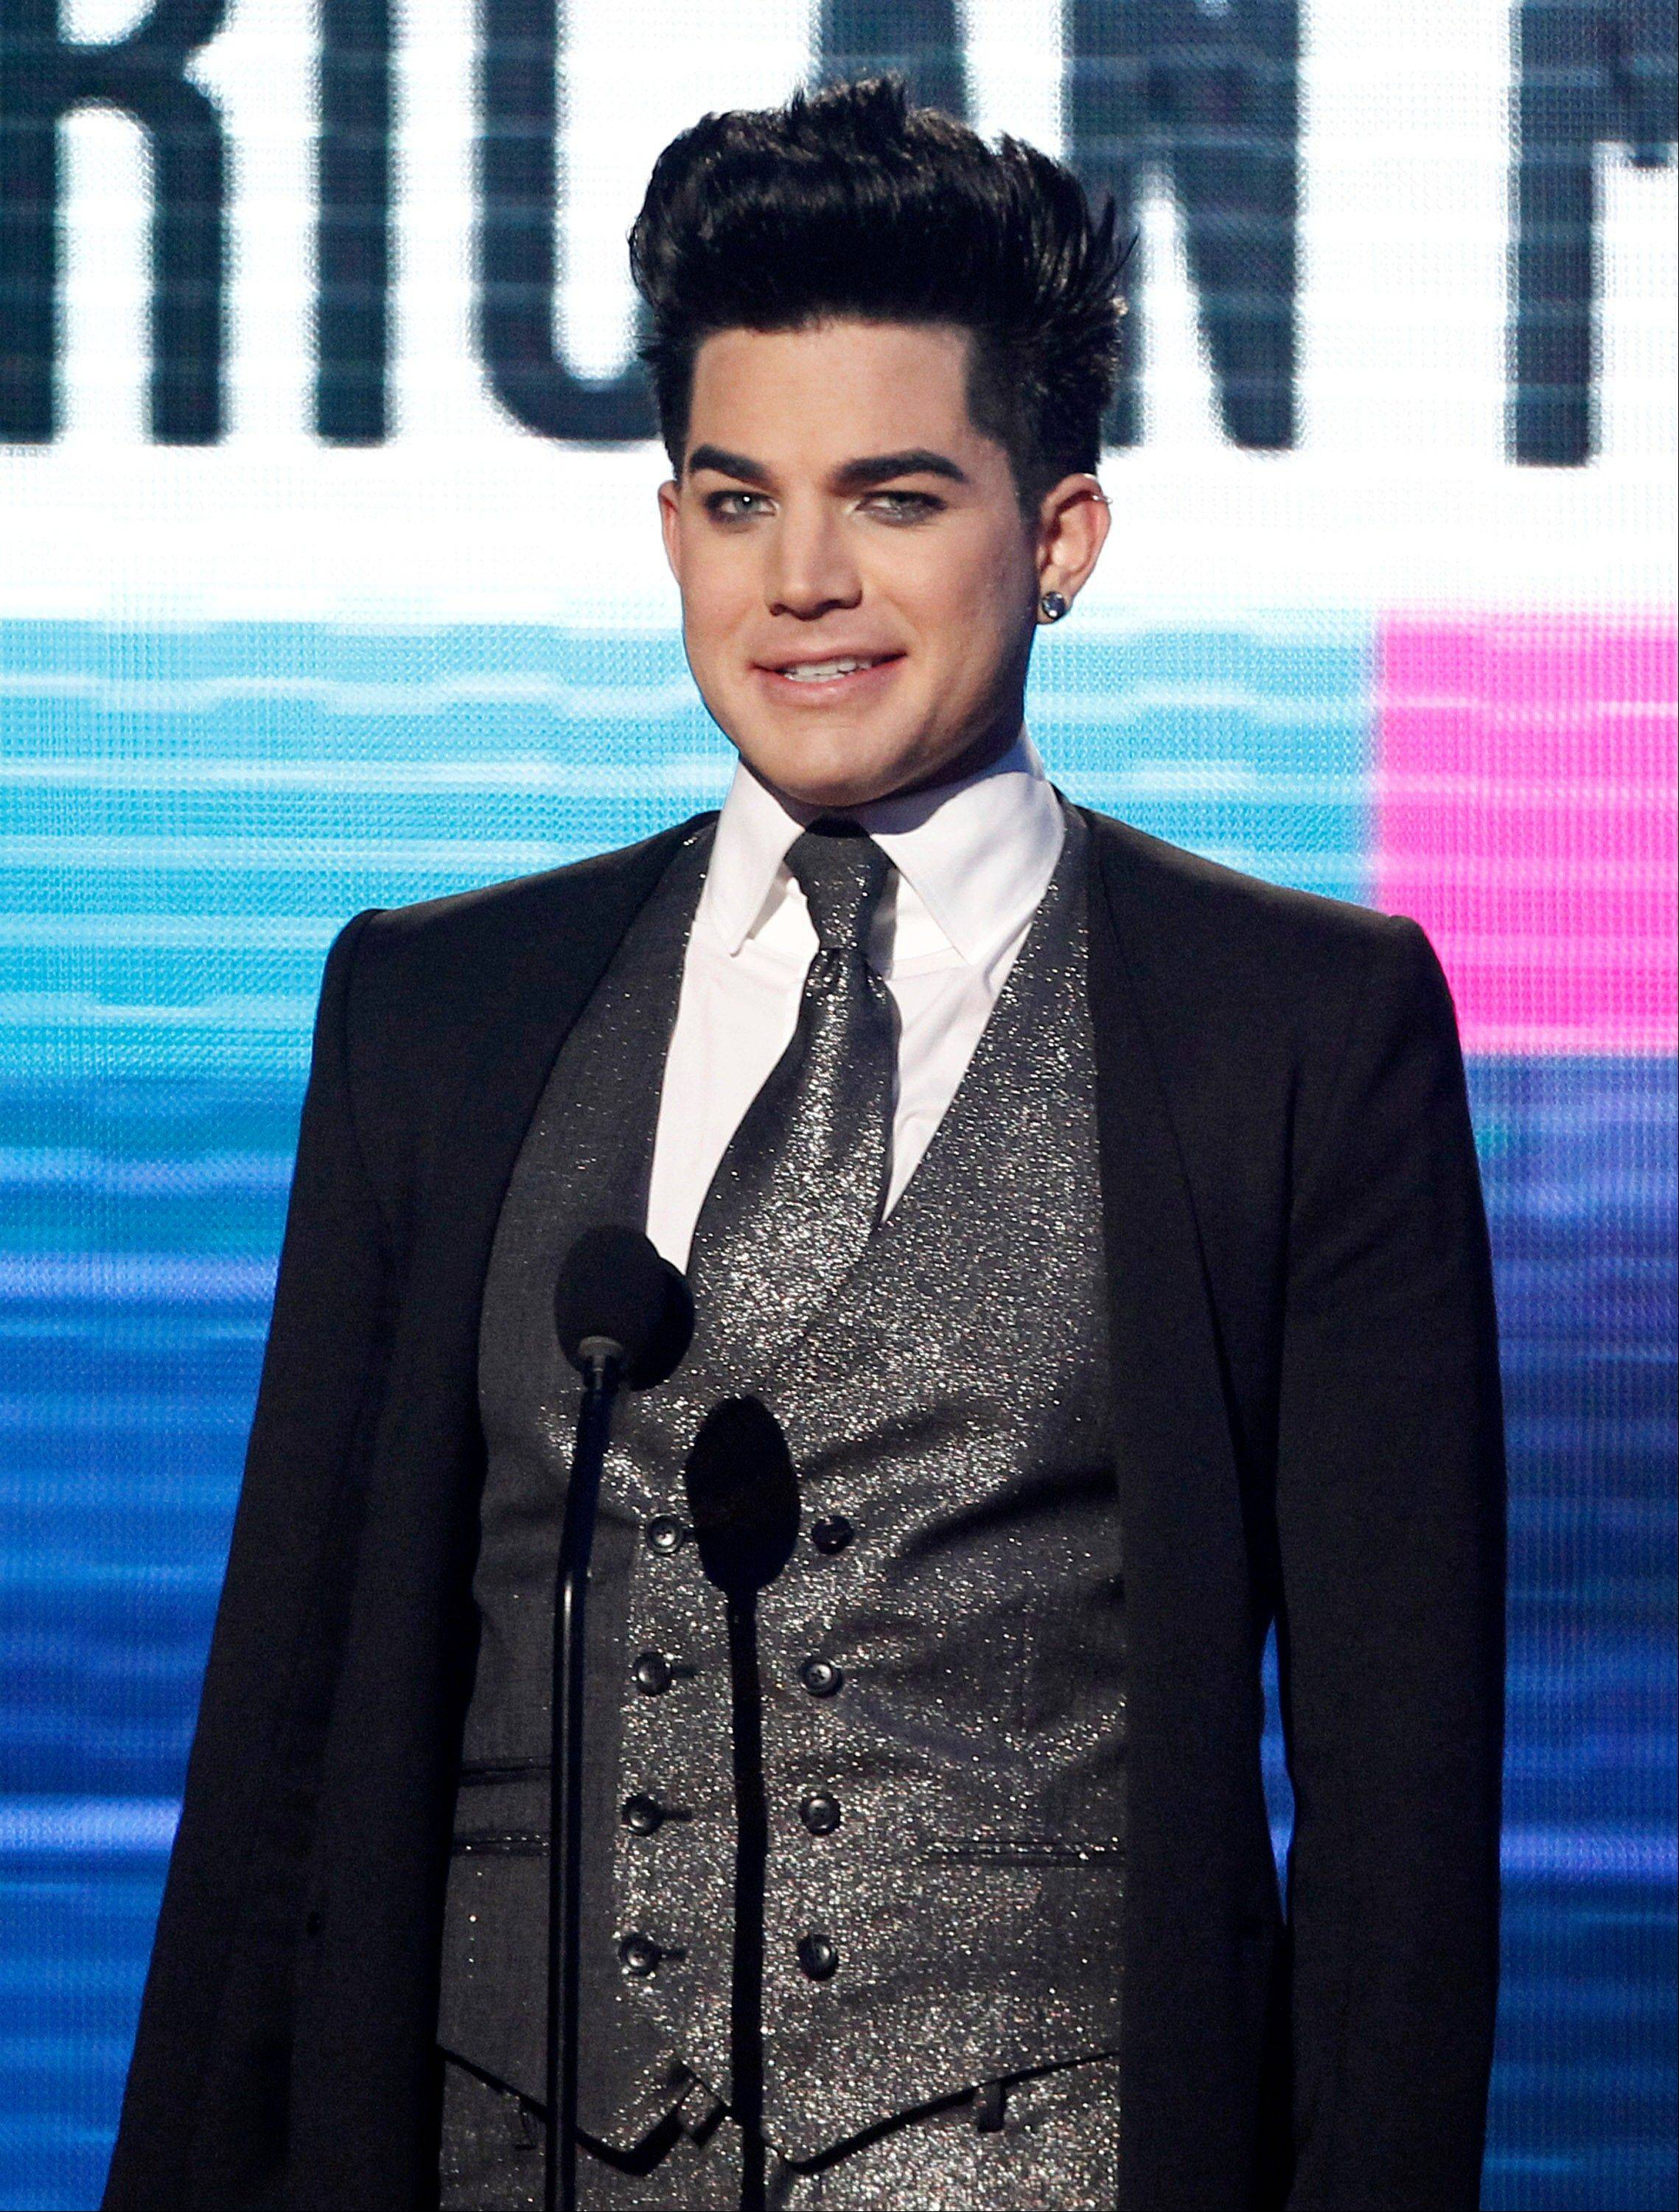 Adam Lambert is seen onstage at the 39th Annual American Music Awards on Sunday, Nov. 20, 2011 in Los Angeles.